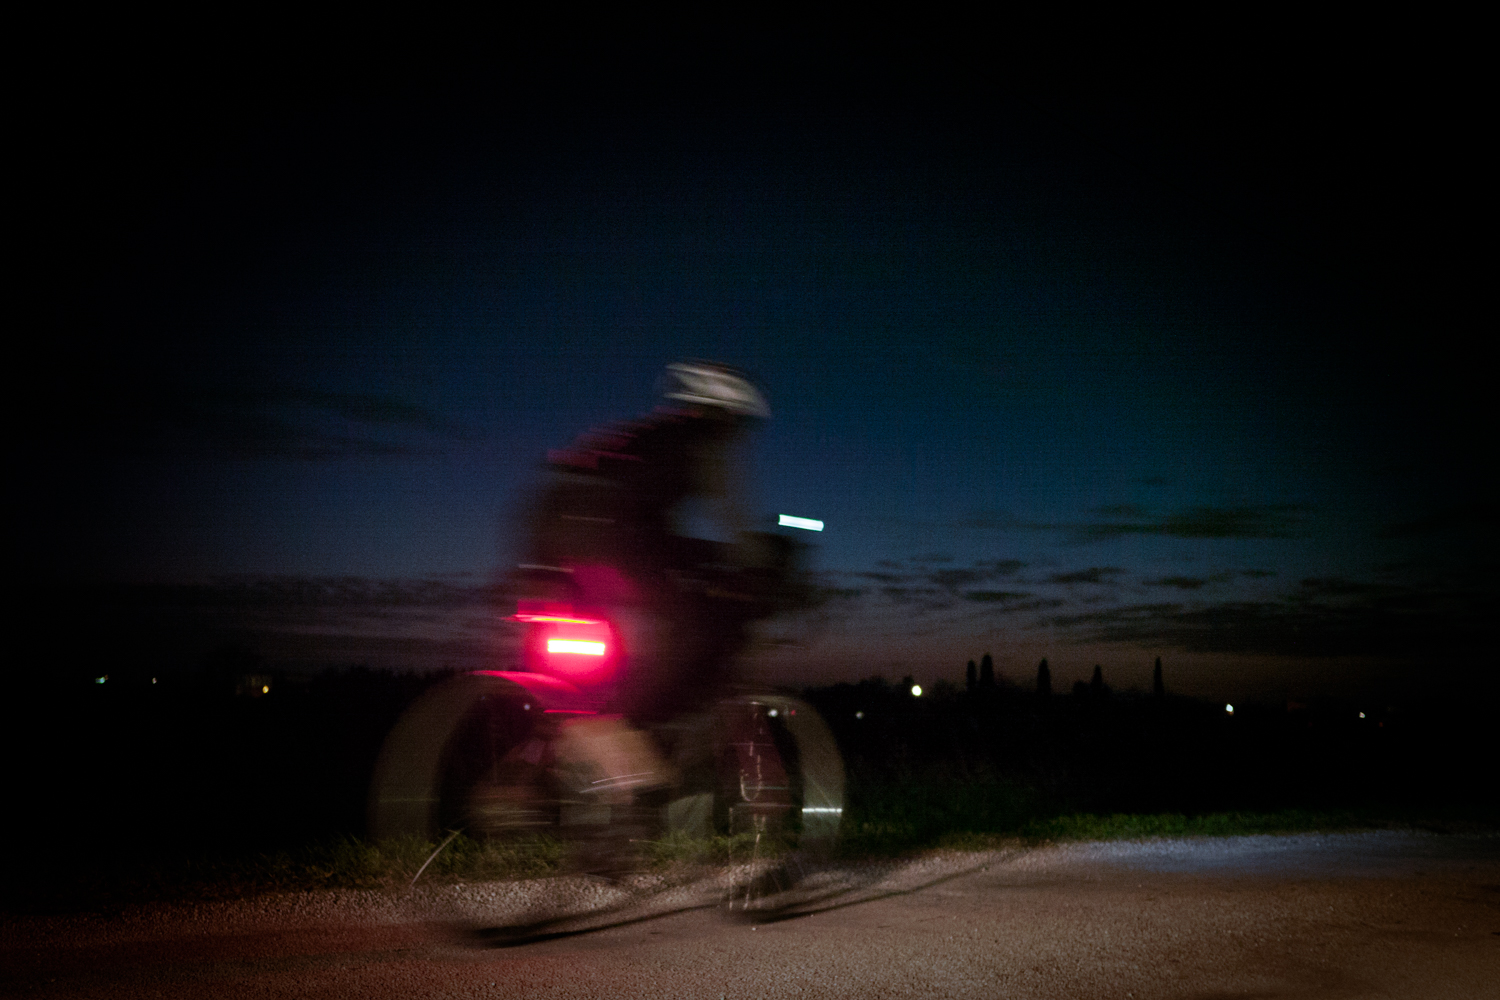 Rapha Festive 500 - Cycling Woman by night - Supernova light E3 pro 2 02